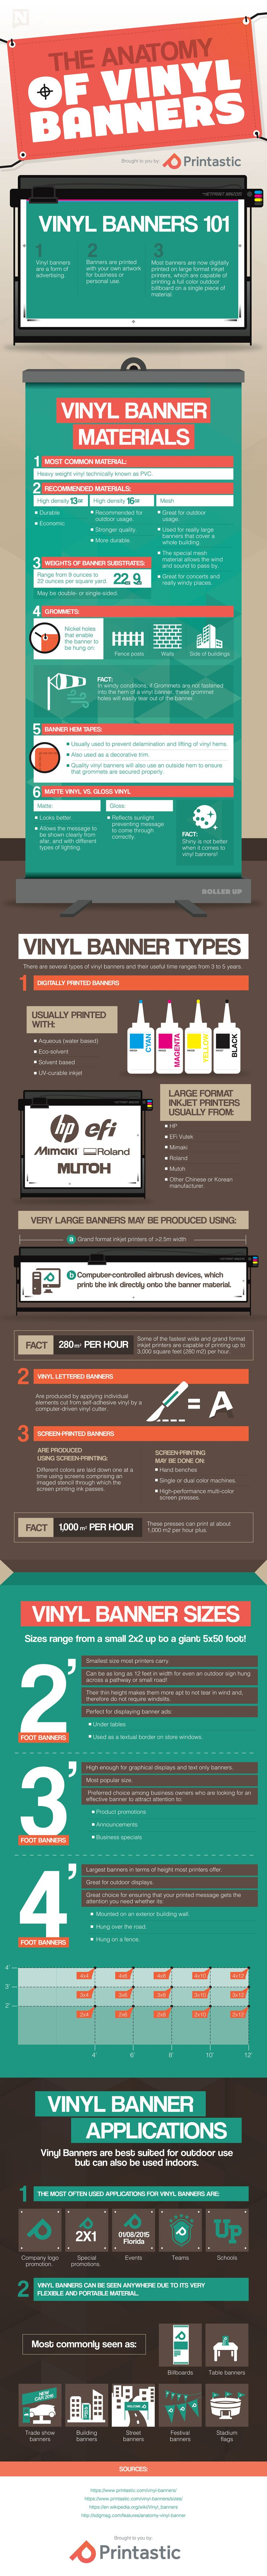 I bet you didn't know this about vinyl banners! https://www.printastic.com/the-anatomy-of-vinyl-banners.html